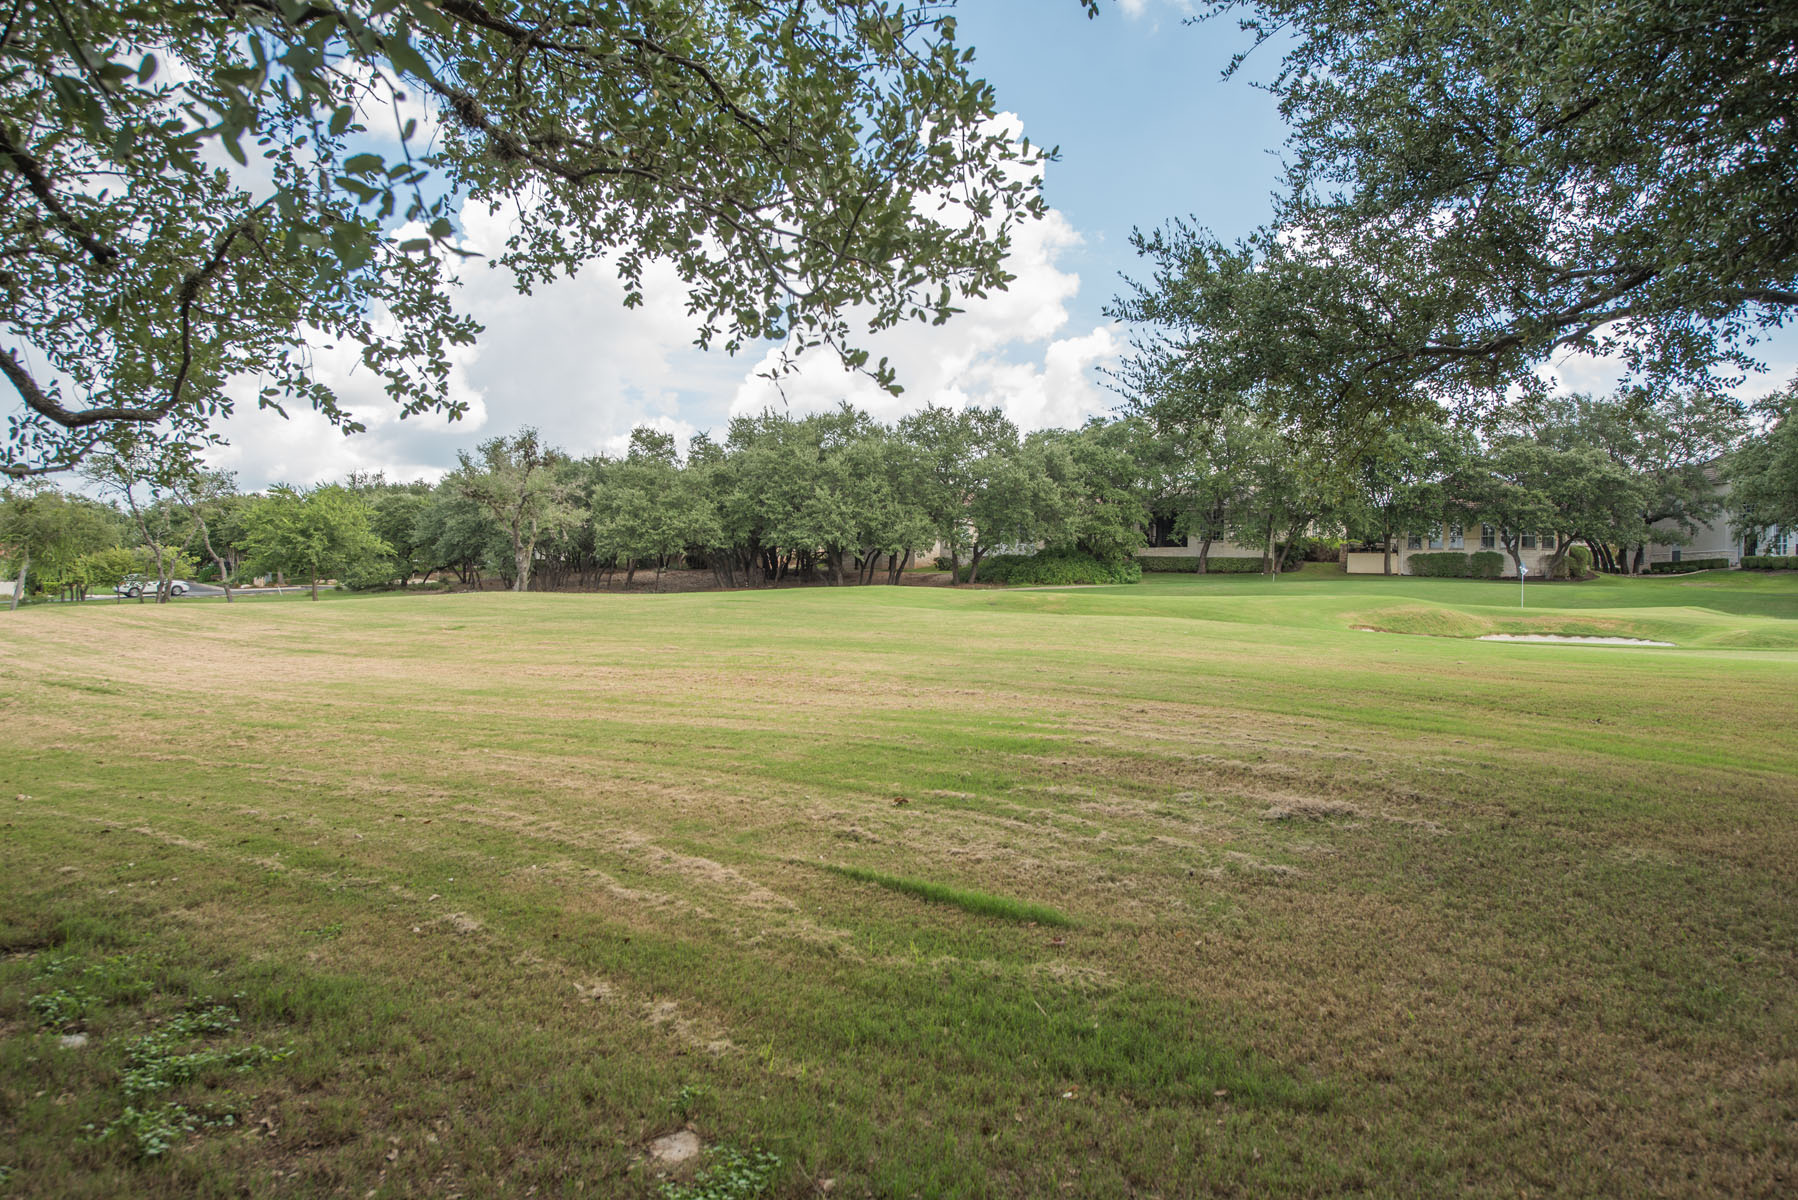 Condominium for Sale at Golf Course Living 313 The Hills Dr 16 The Hills, Texas 78738 United States